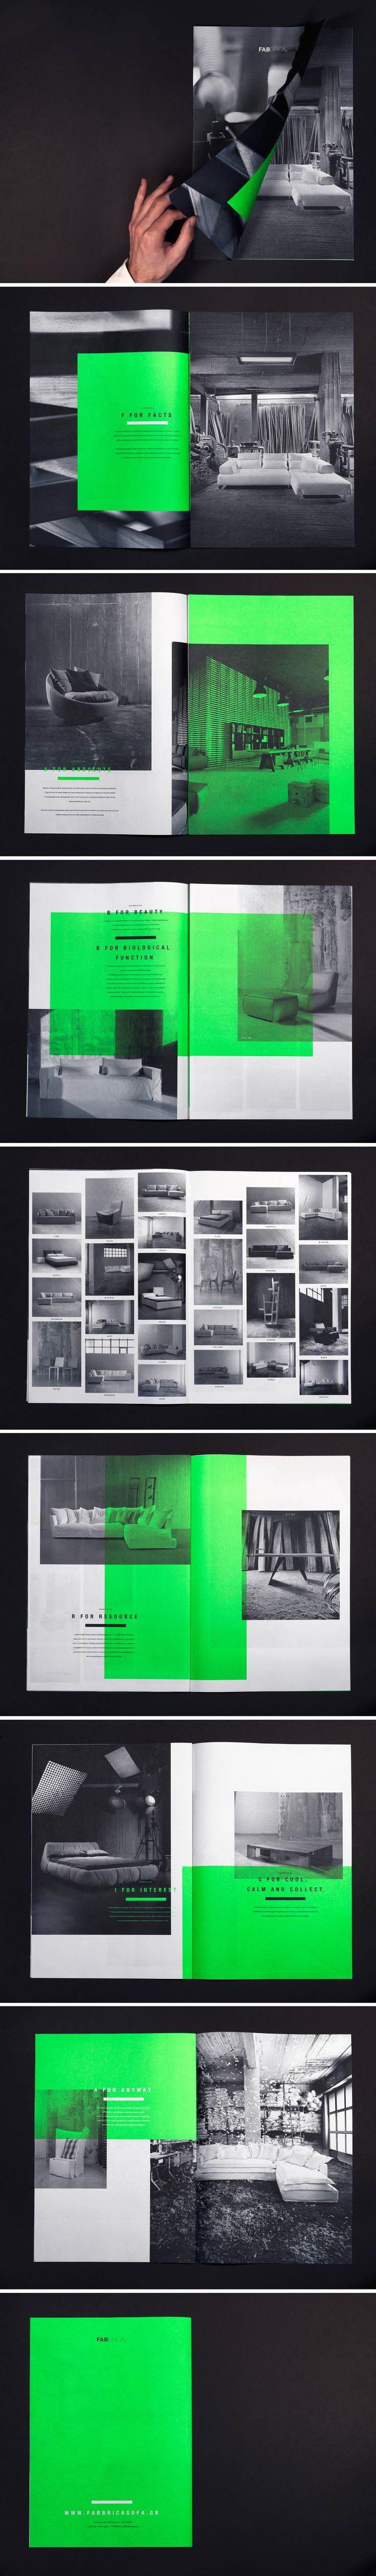 Bright Color / Black and White Photography / Overlapping Panels /// Fabrica—tion / Joshua Olsthoorn